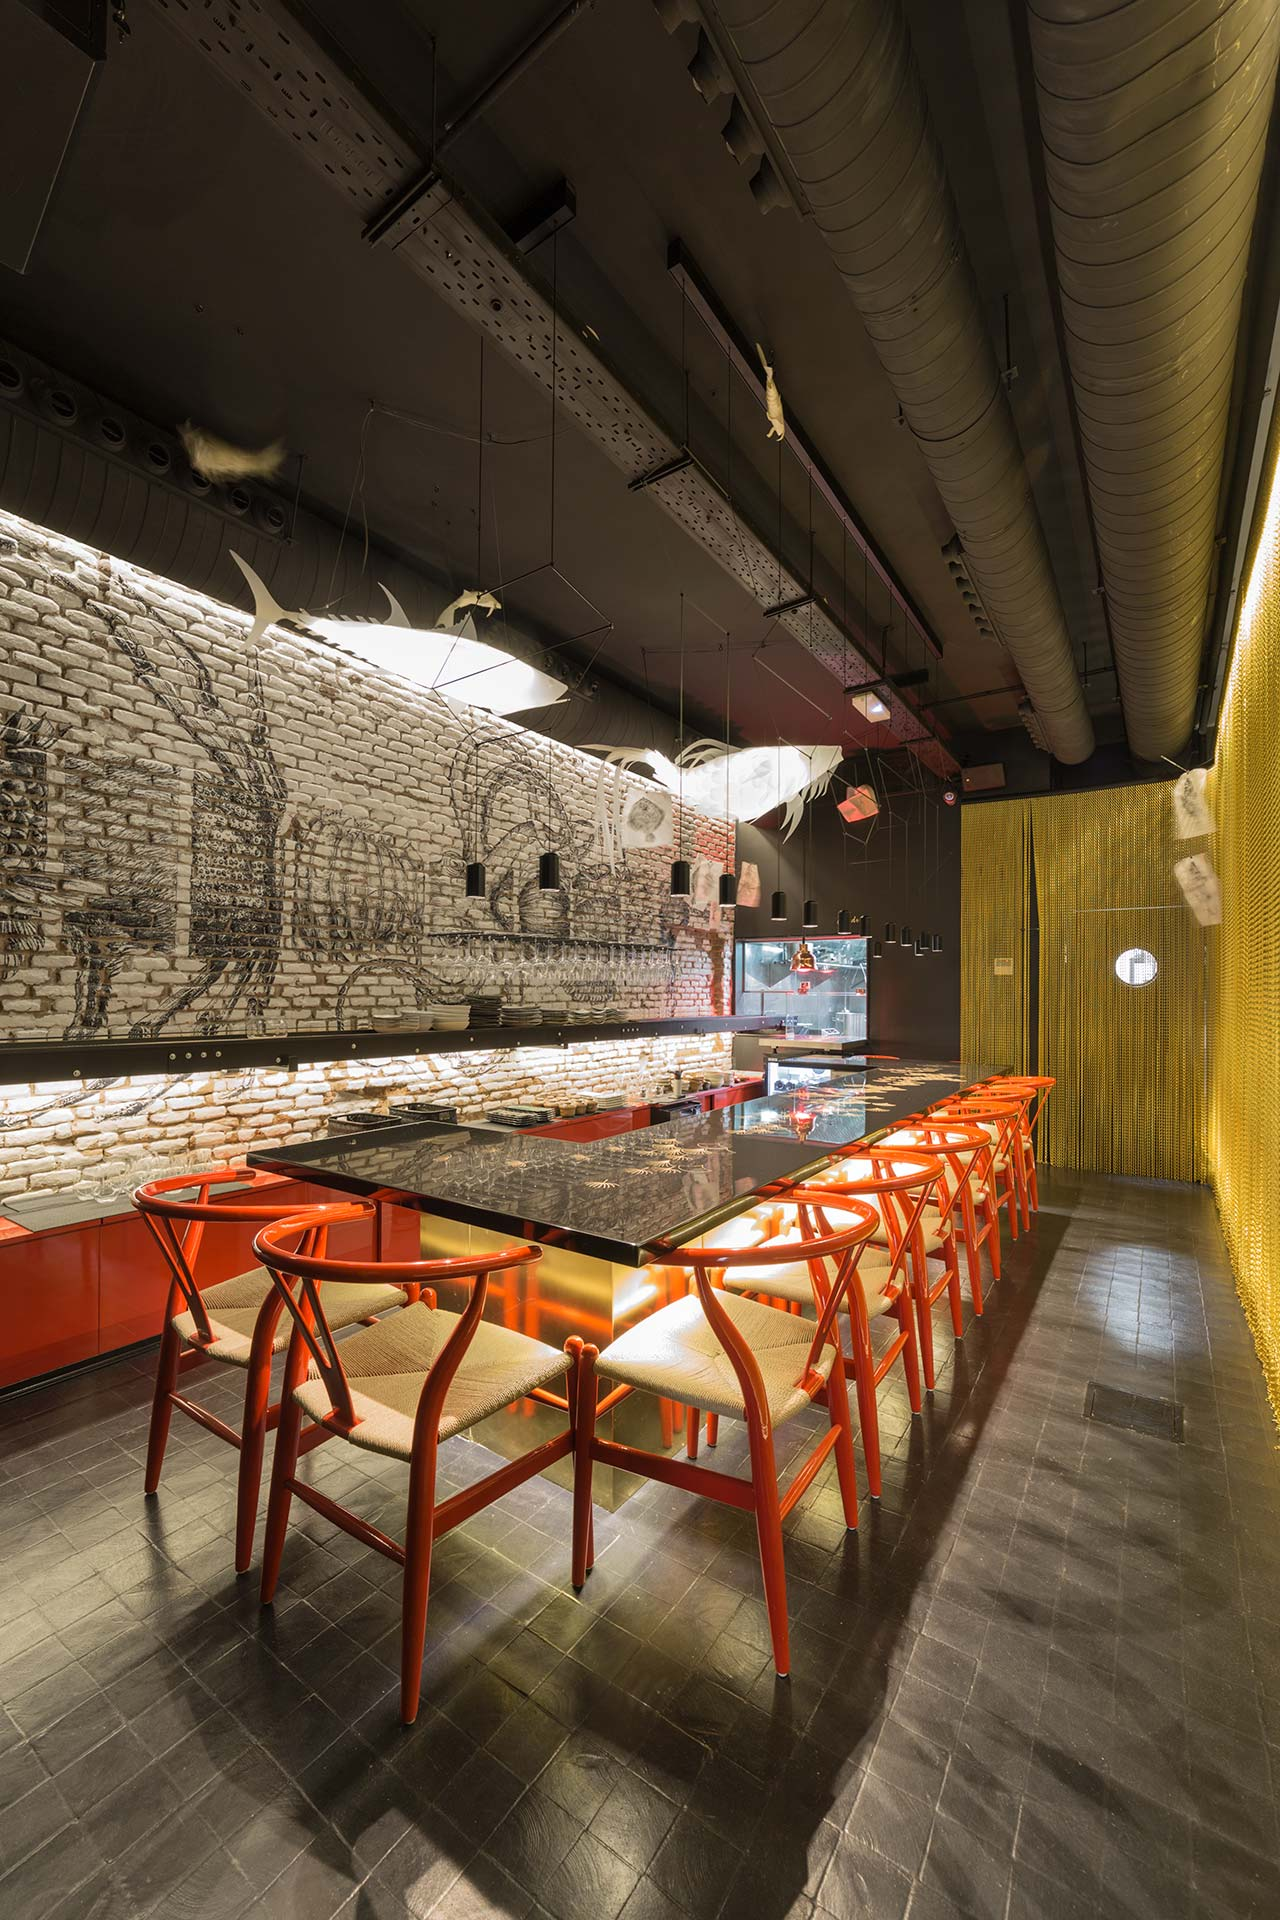 crudito restaurant - madrid - spain.   Рестораны